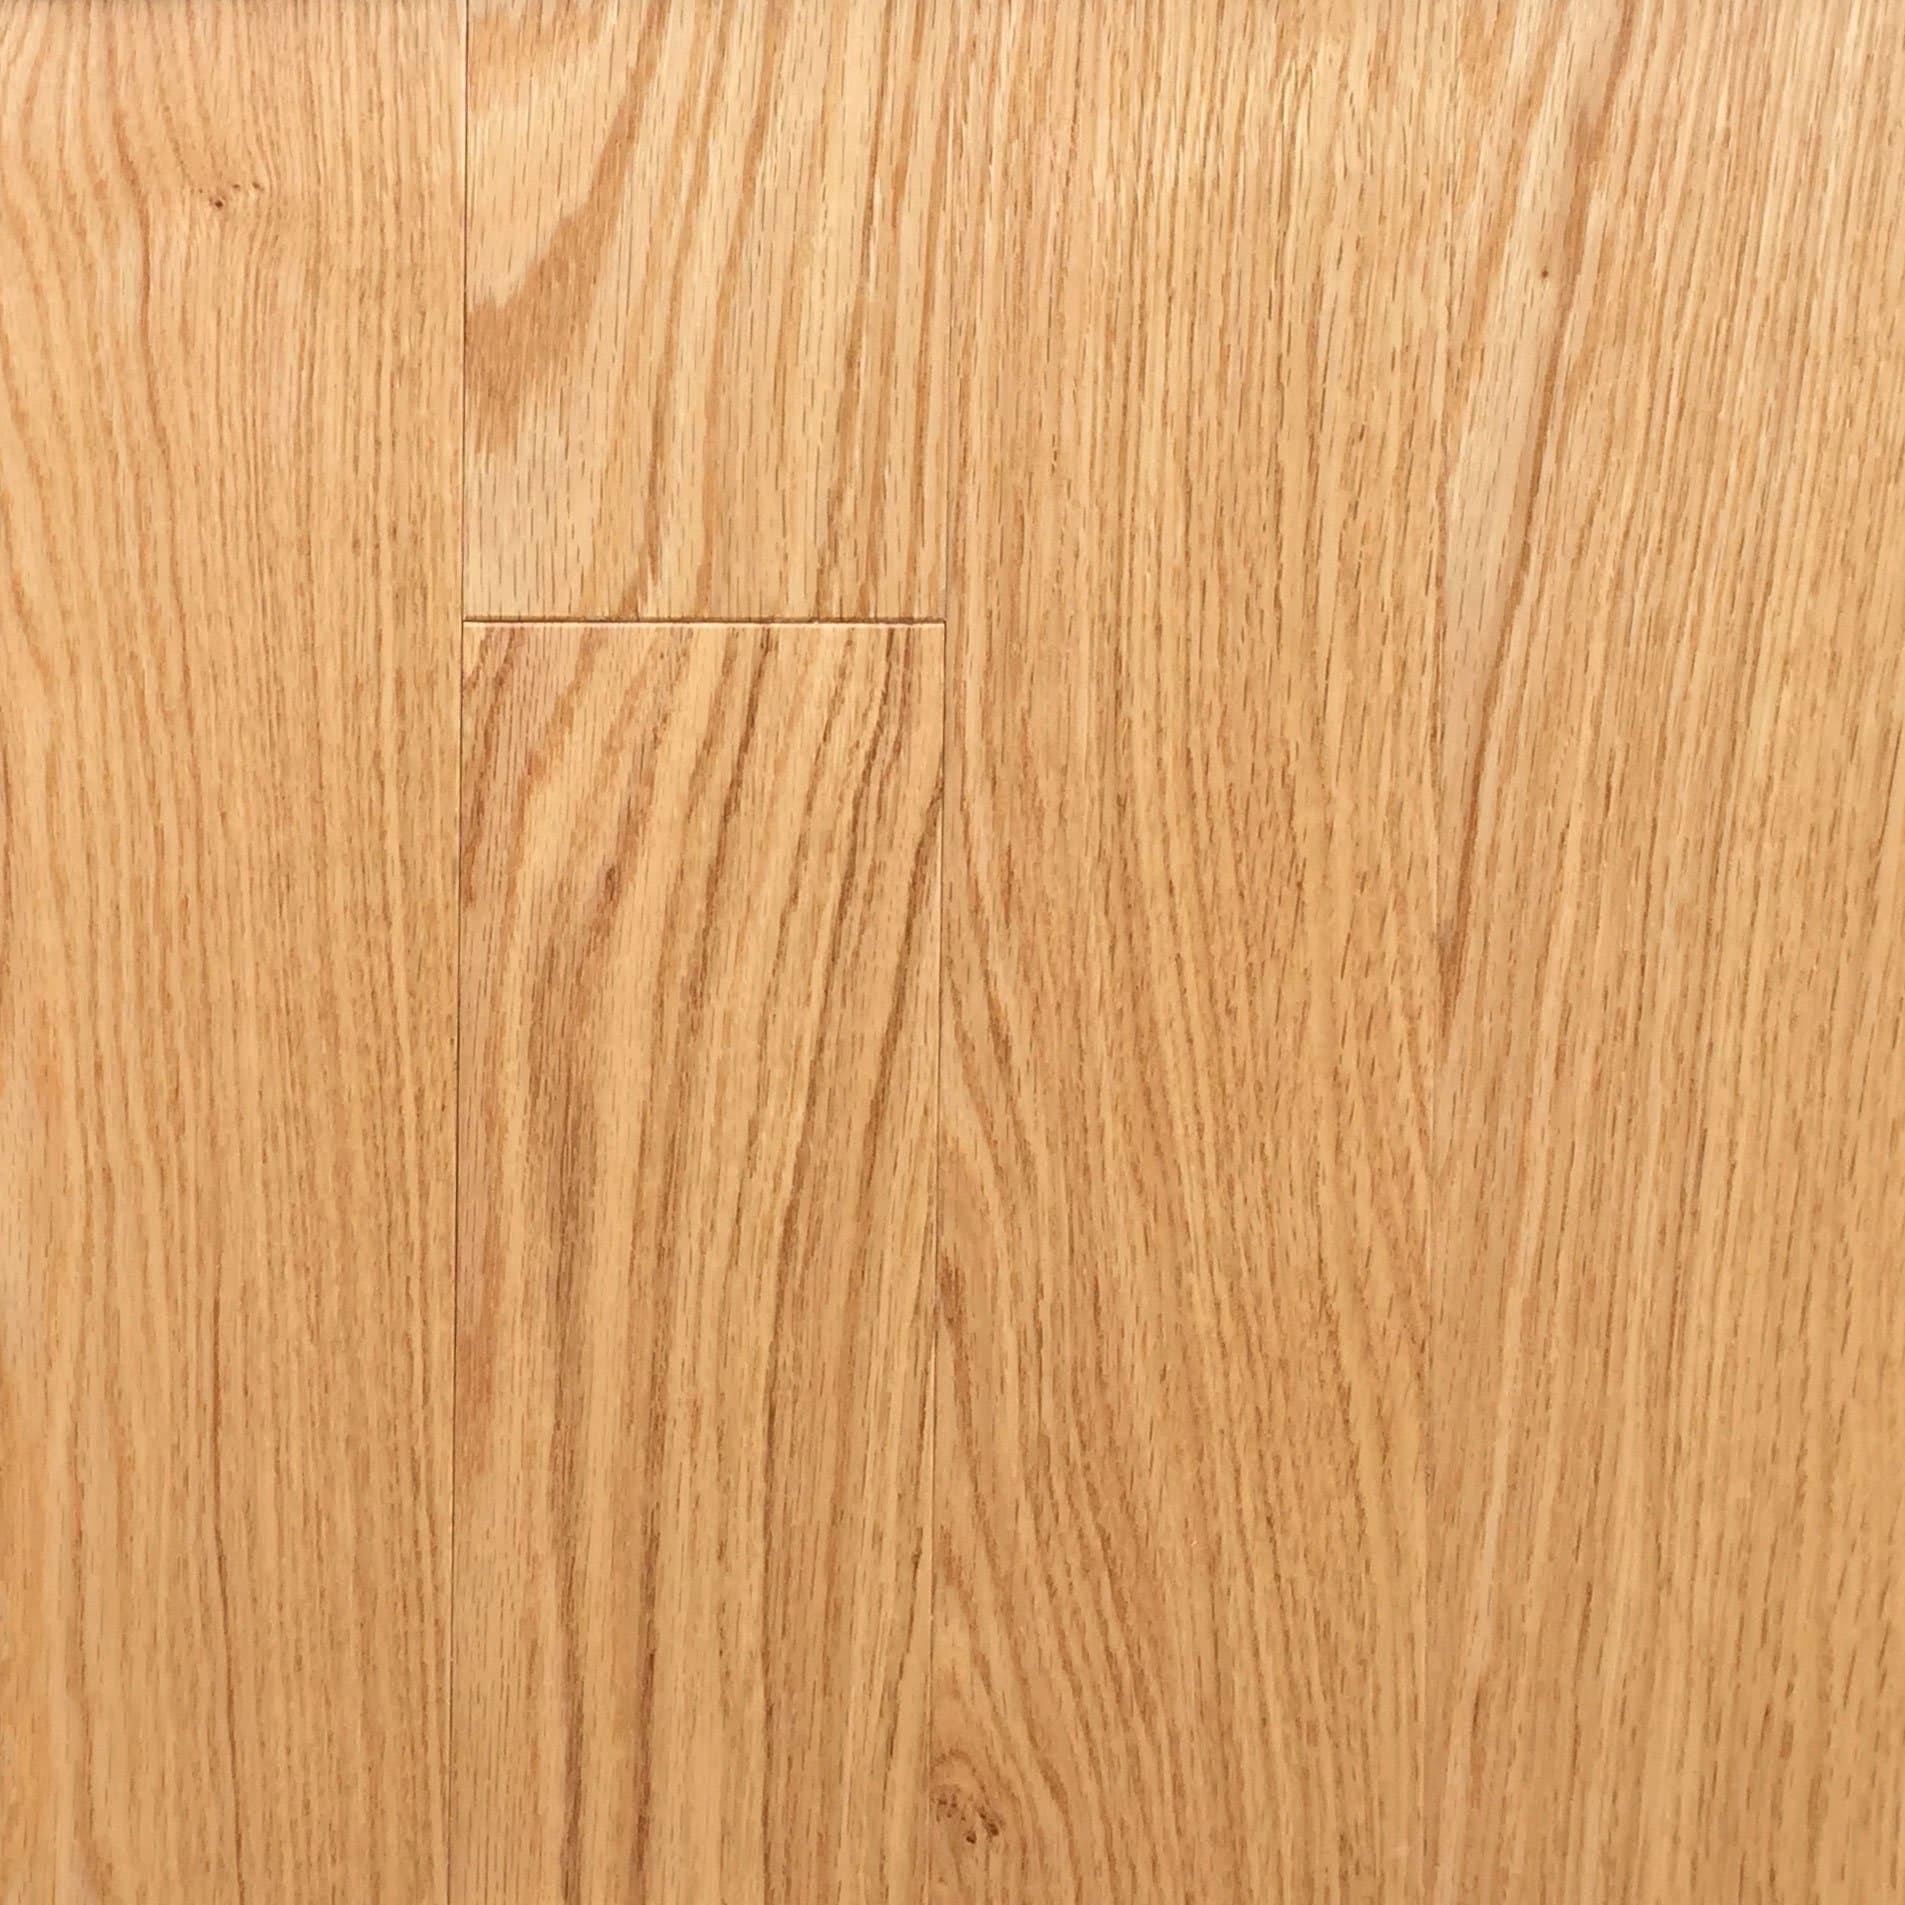 Natural red oak hardwood planet for Natural red oak floors